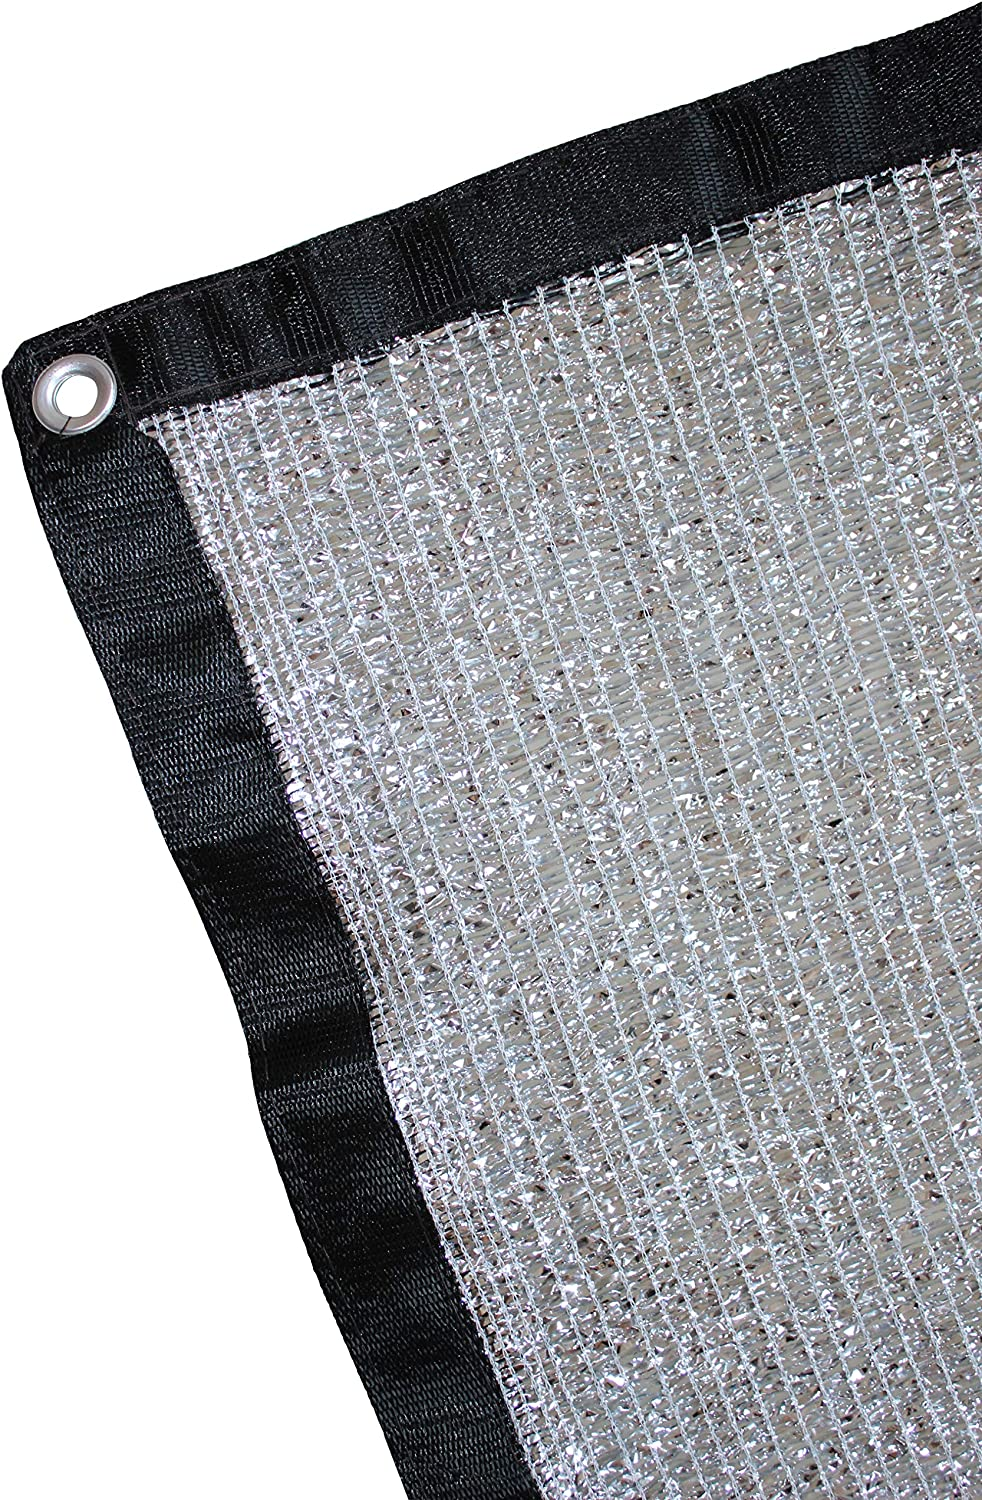 Jesasy 70% 6.5 ft x 6 Gromme Aluminet Cheap super special price Cloth with Shade Panels Challenge the lowest price of Japan